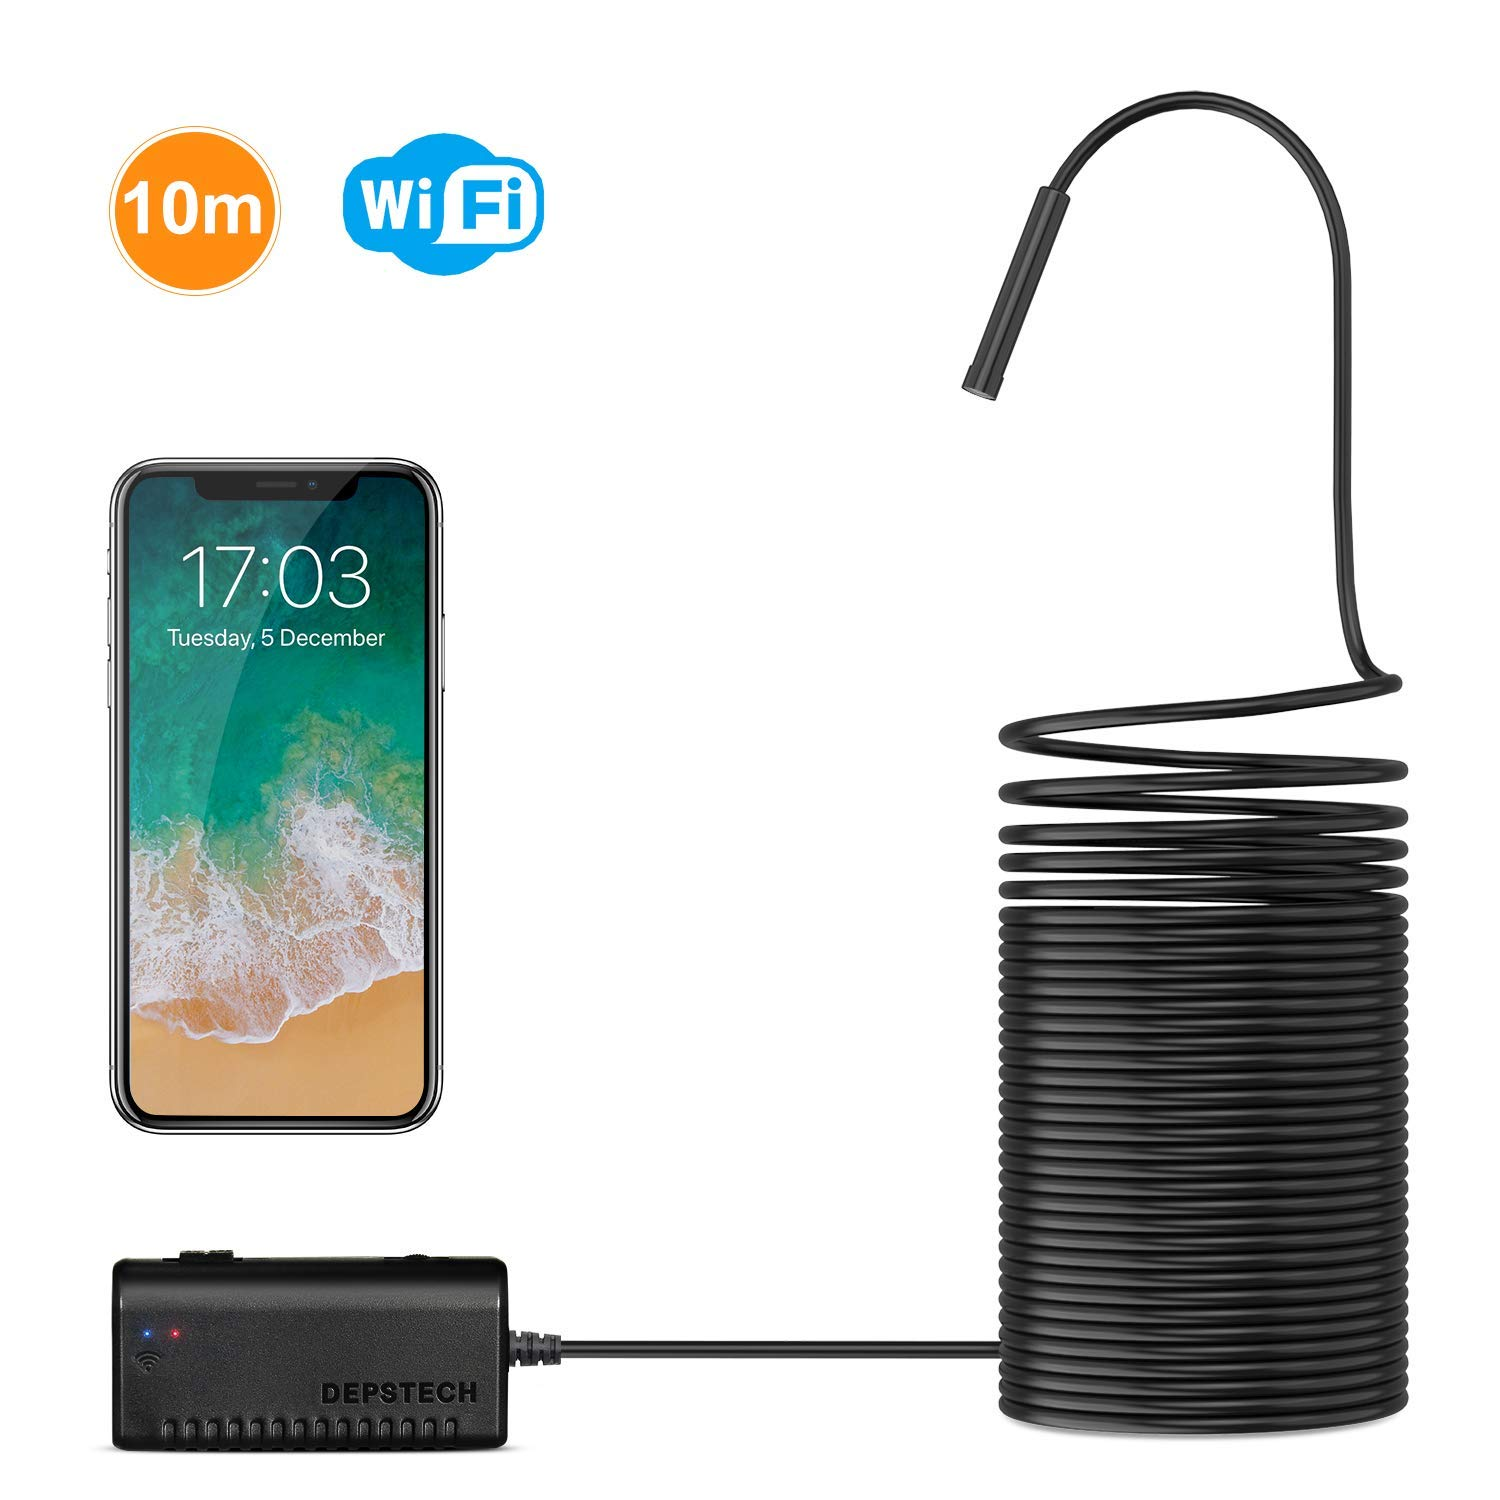 Wireless Endoscope, DEPSTECH WiFi Borescope Inspection Camera 2 0  Megapixels HD Snake Camera for Android and iOS Smartphone, iPhone, Samsung,  Tablet